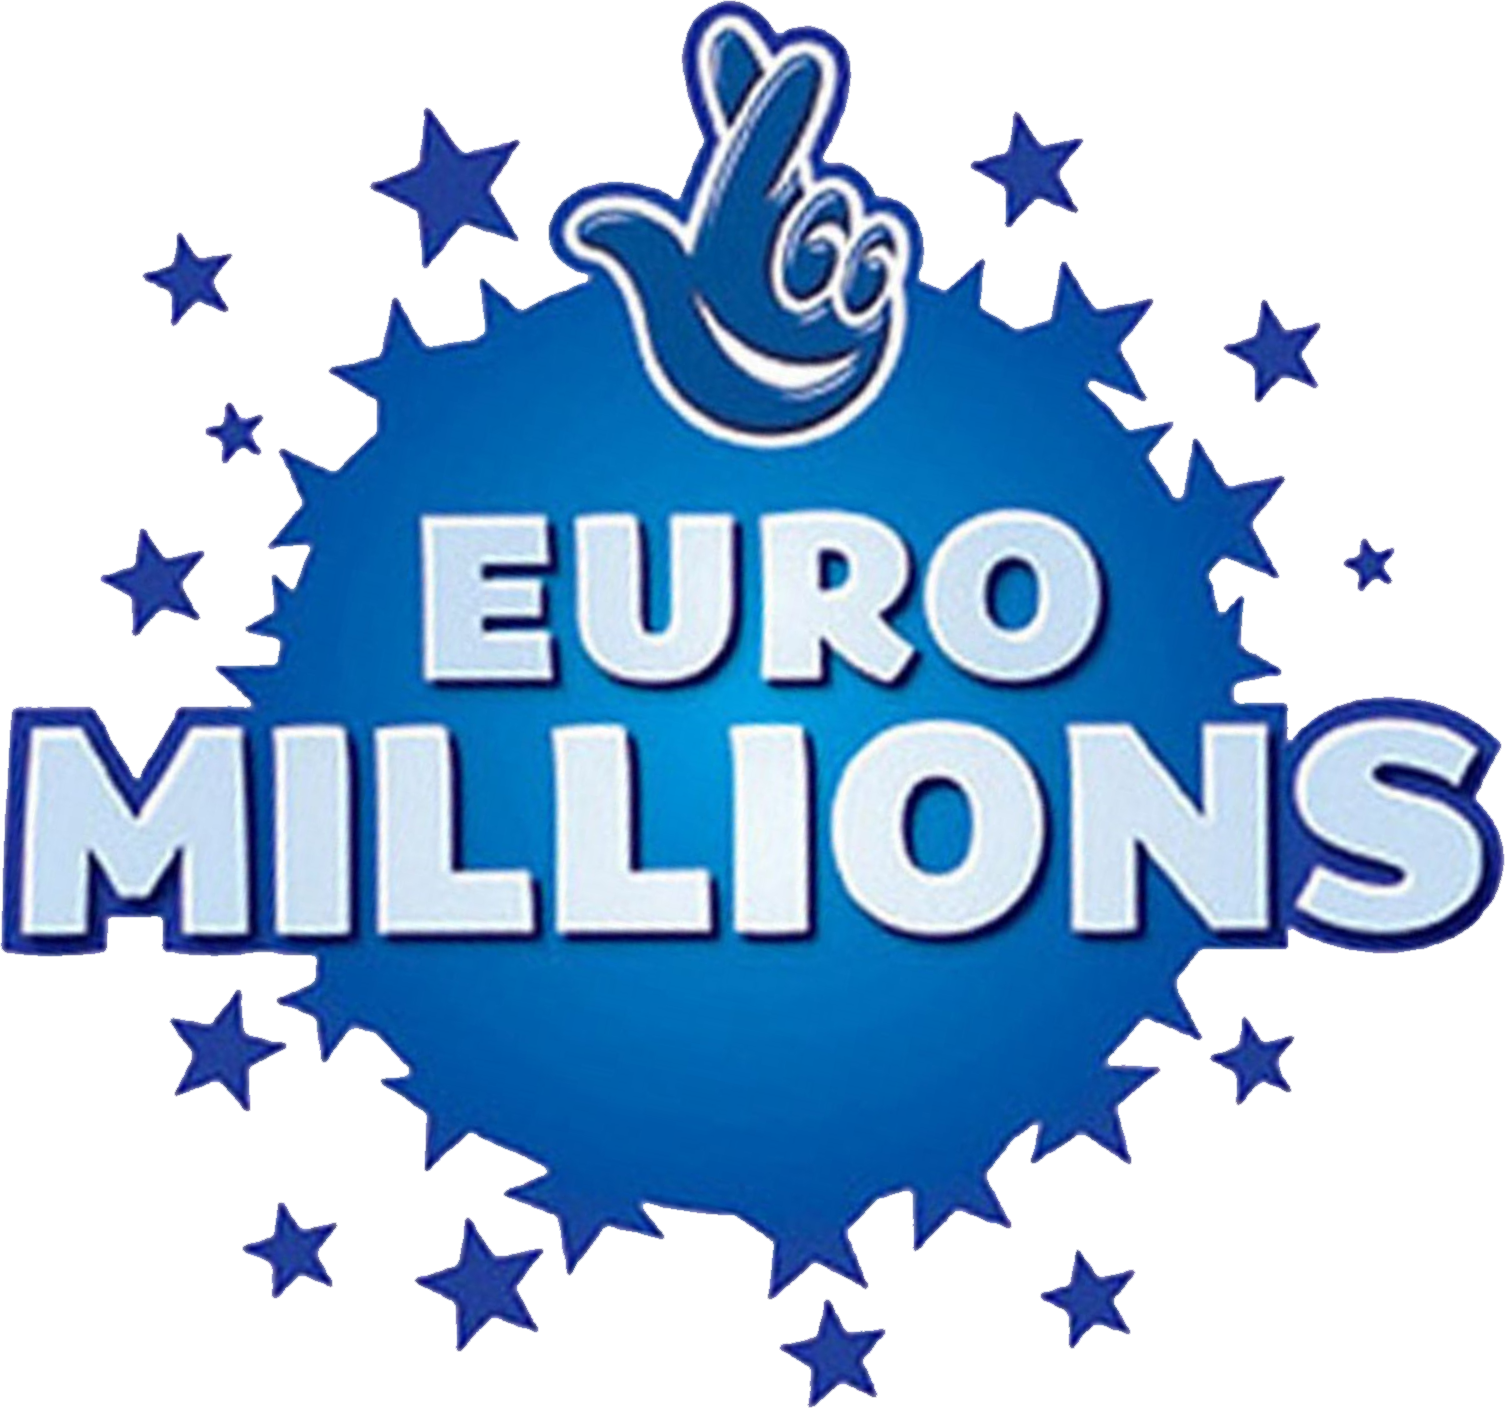 Will EuroMillions_announce the long-anticipated first Superdraw of 2016 this month?